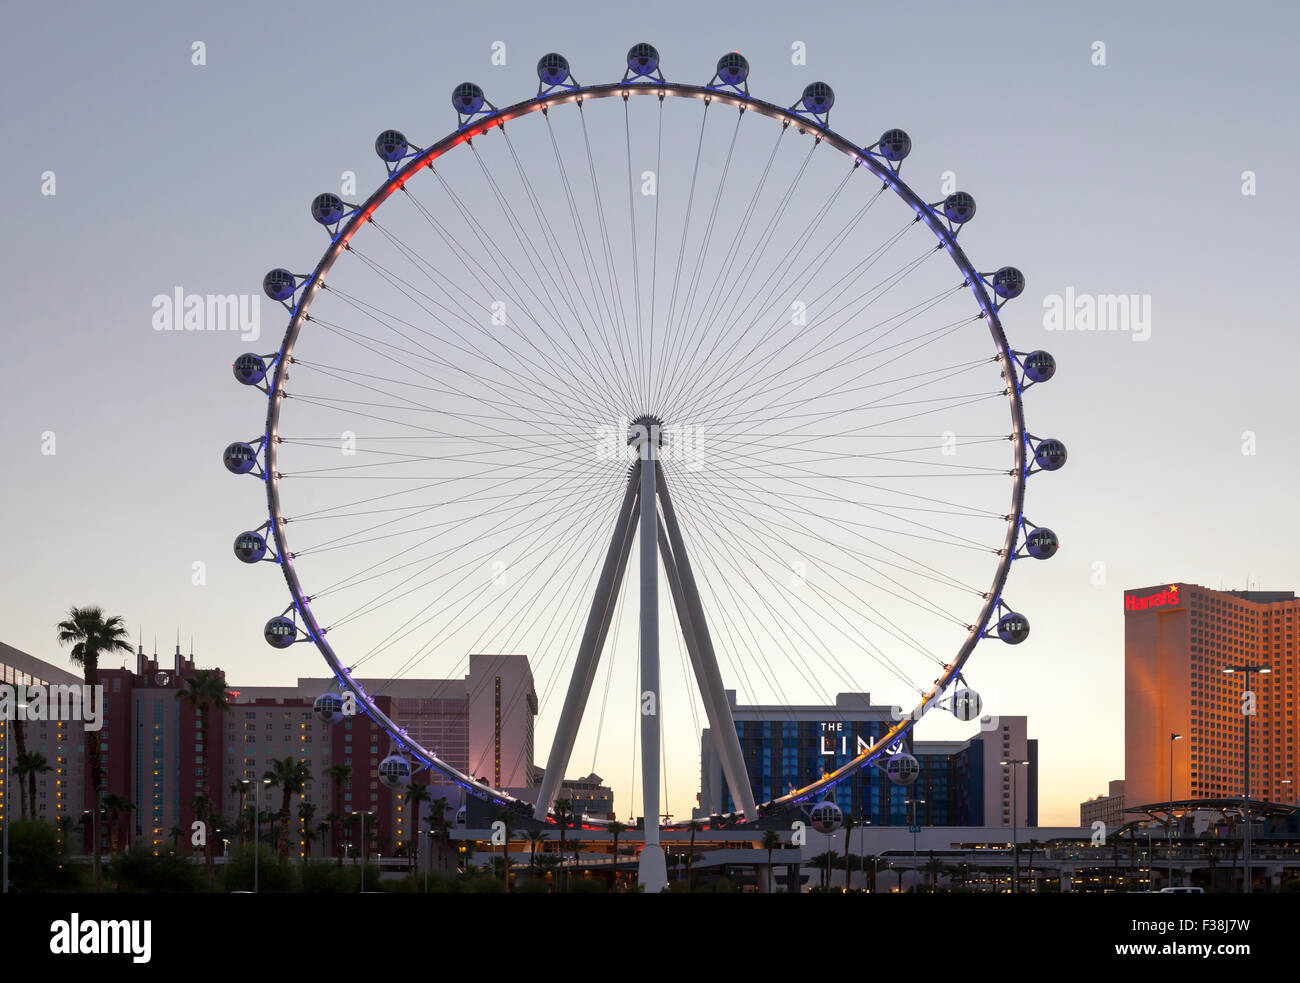 An evening view of the High Roller Ferris Wheel in Las Vegas, Nevada. Stock Photo